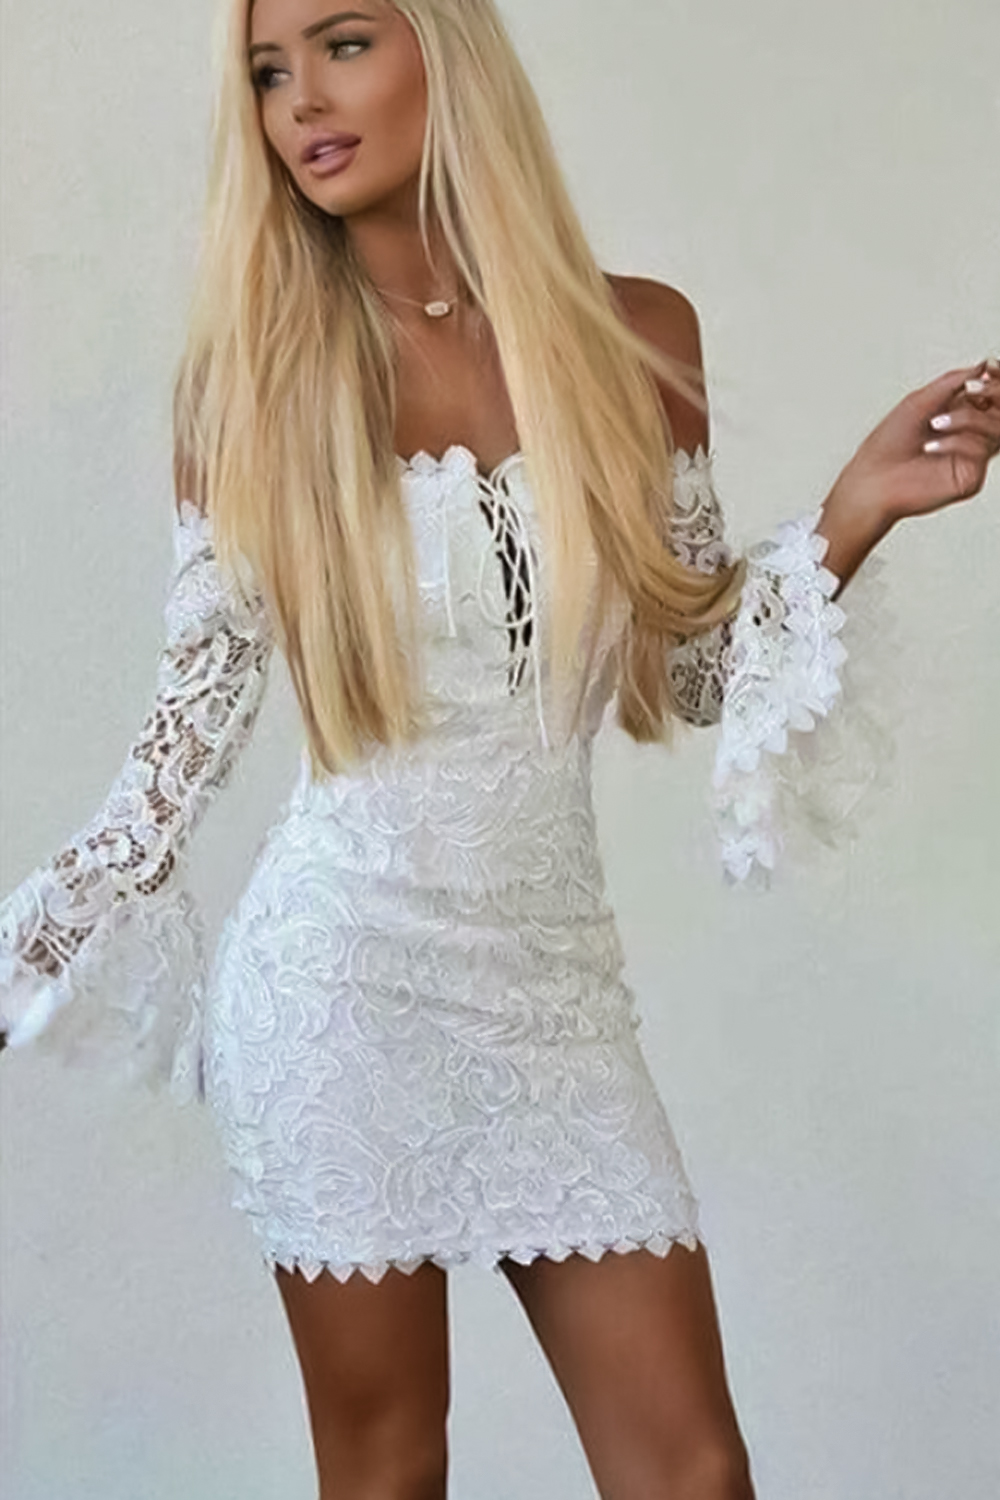 woman with long hair is posing on a plain background in a short boho dress